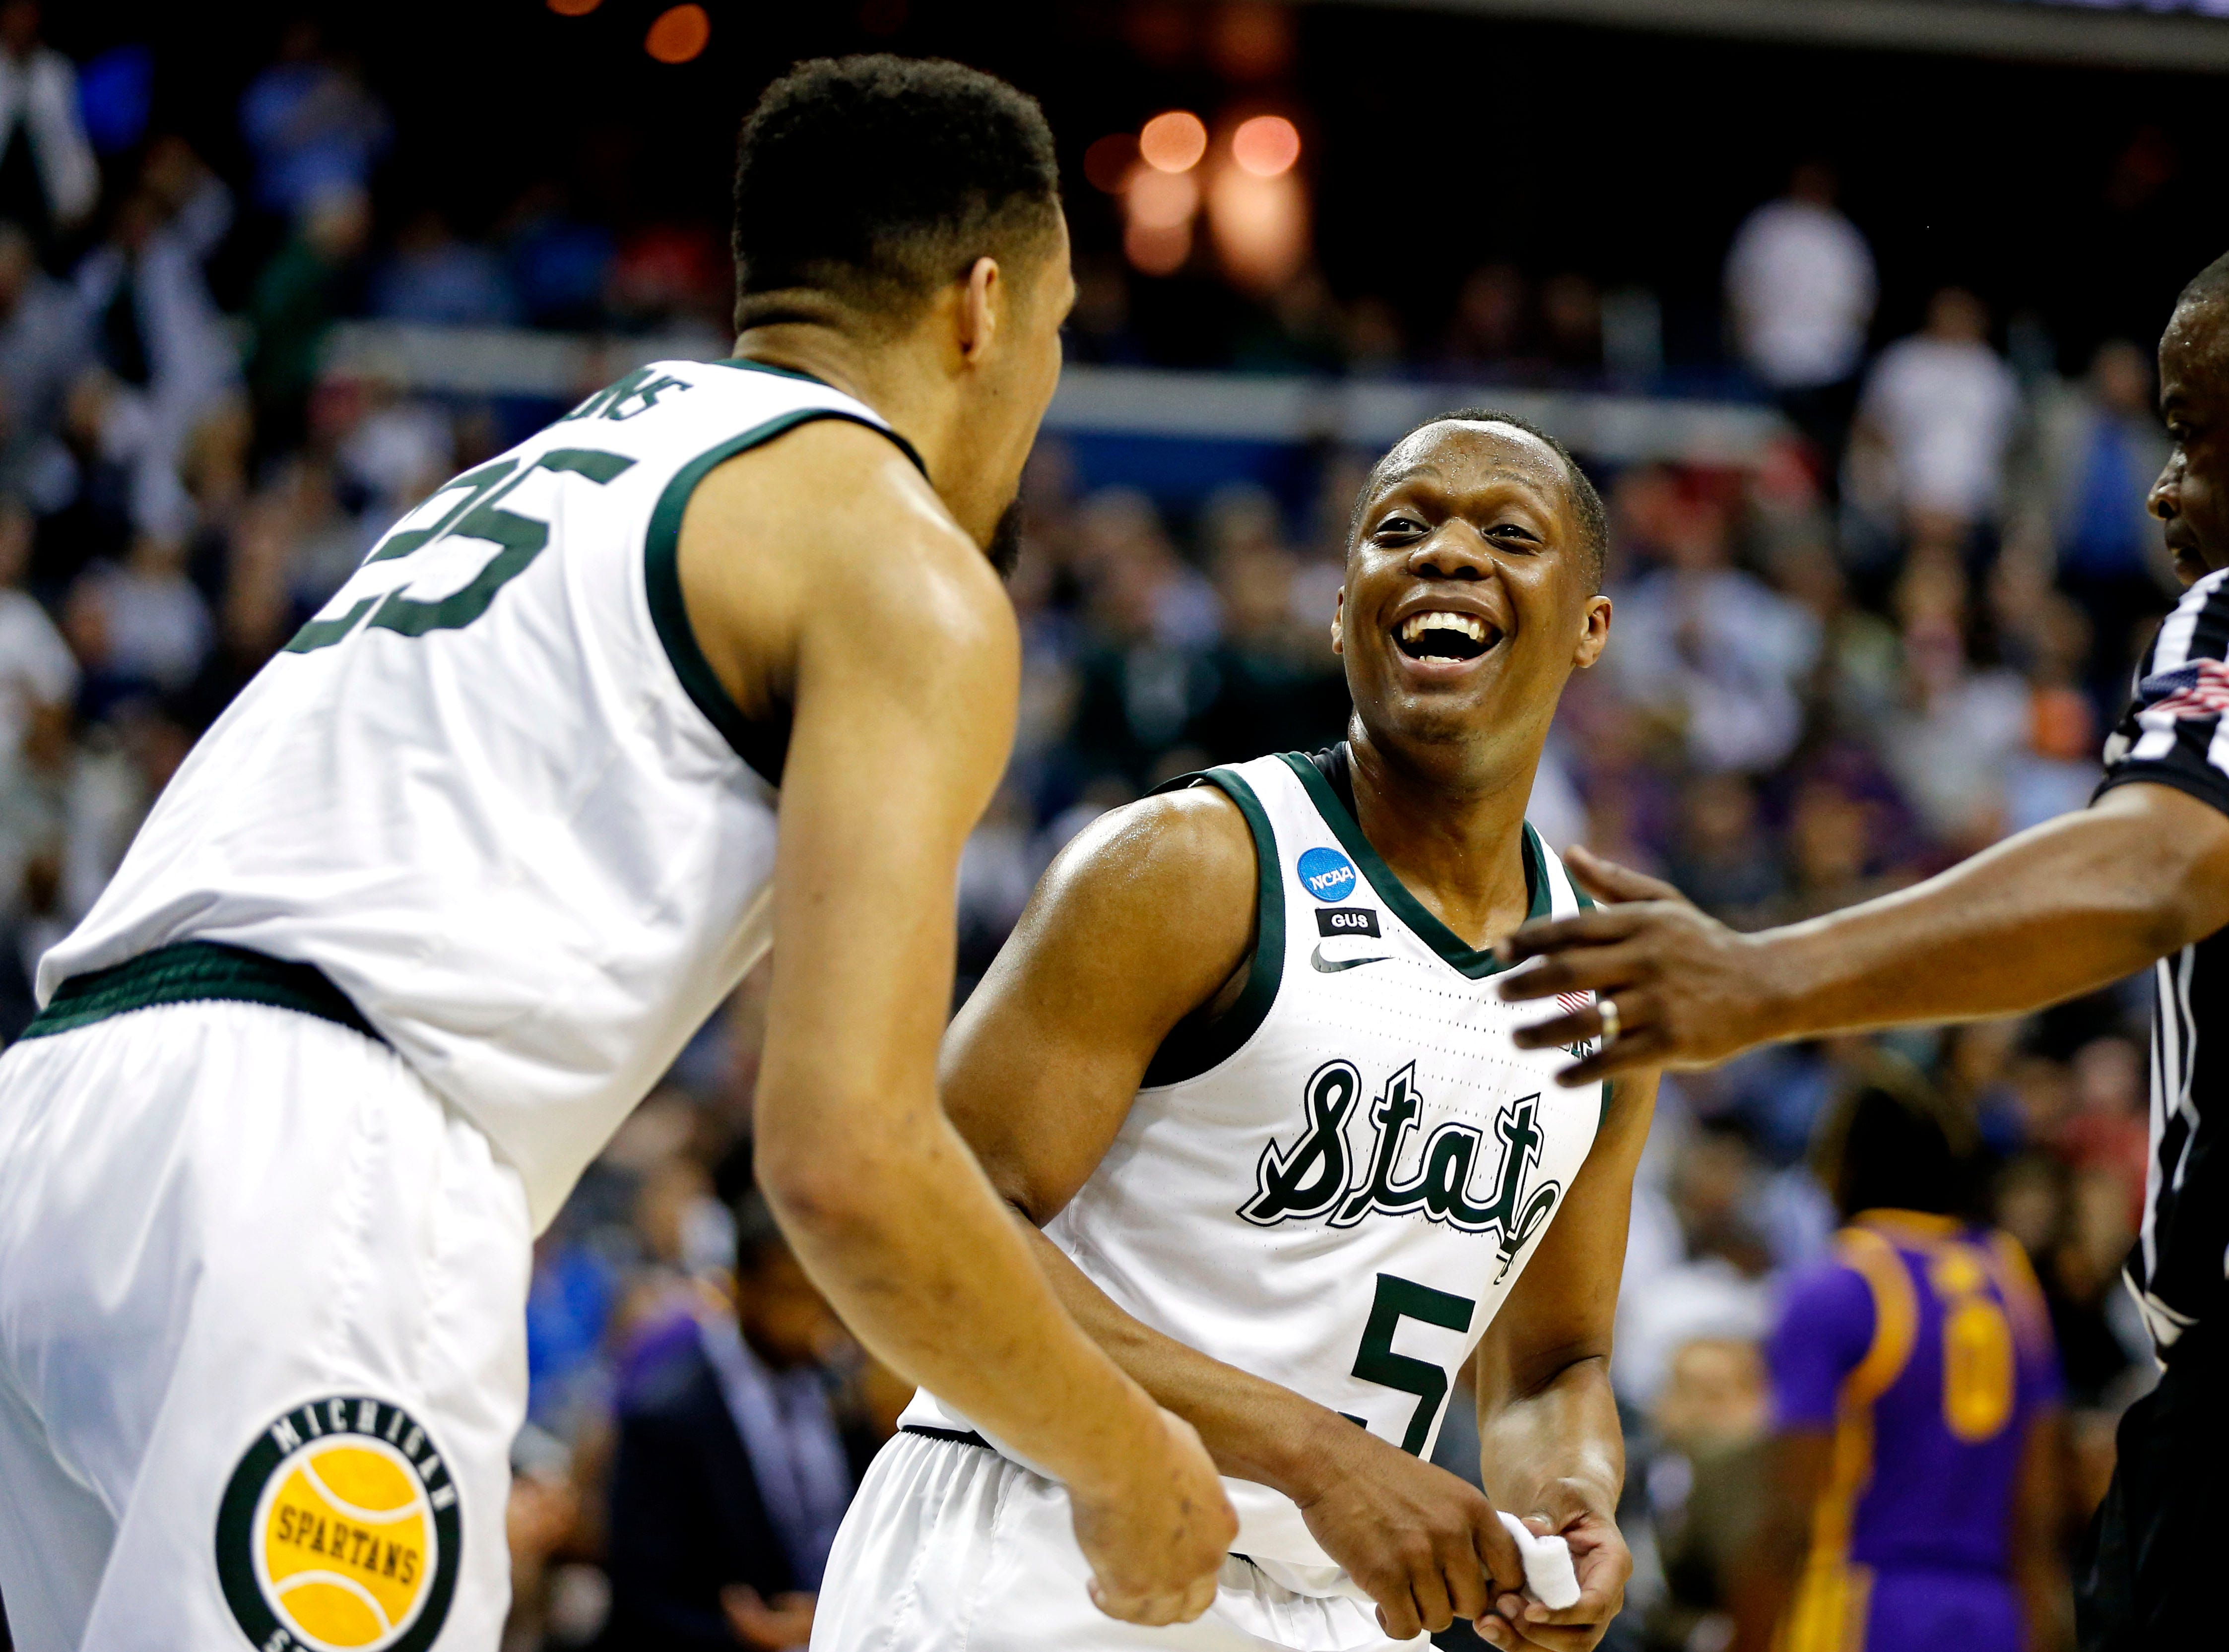 Mar 29, 2019; Washington, DC, USA; Michigan State Spartans guard Cassius Winston (5) and forward Kenny Goins (25) celebrates during the second half against the LSU Tigers in the semifinals of the east regional of the 2019 NCAA Tournament at Capital One Arena. Mandatory Credit: Amber Searls-USA TODAY Sports